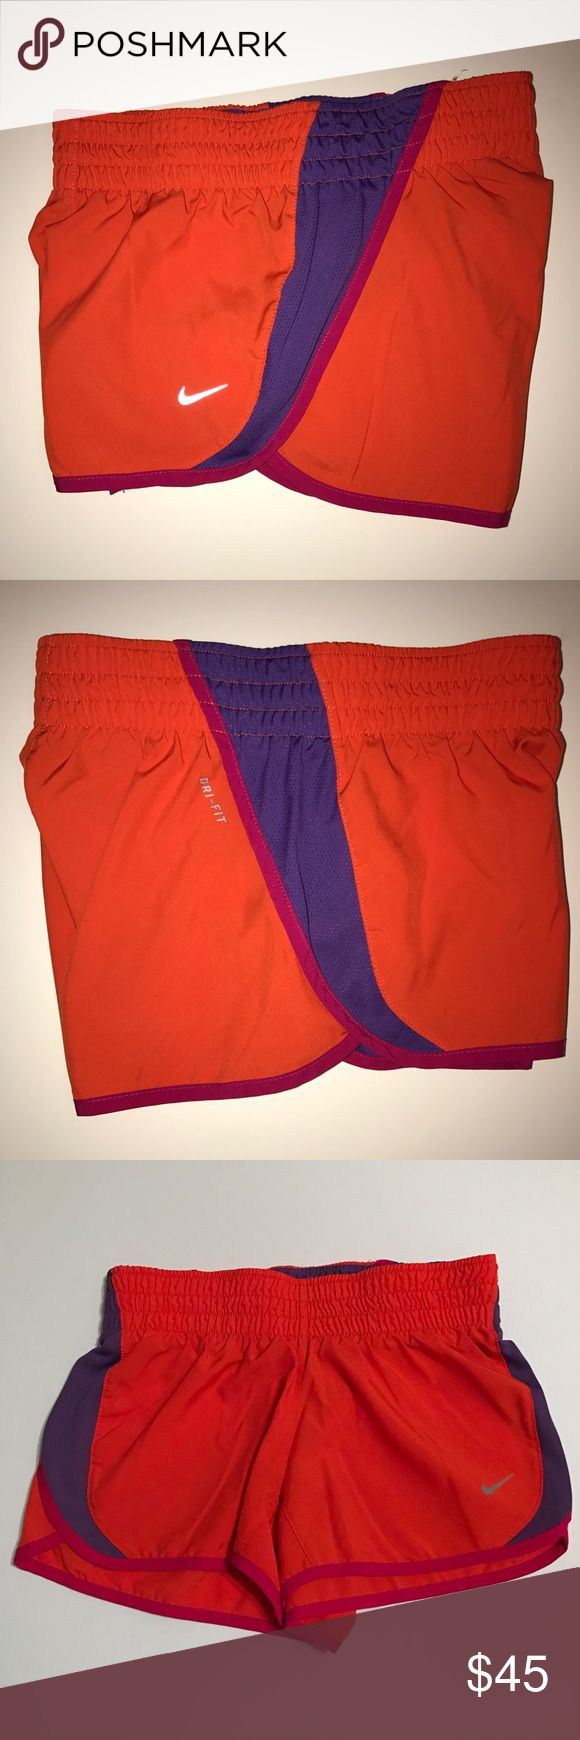 Nike Running Shorts Excellent used condition! Only worn twice. These had built in underwear and I cut them out cause they were very noticeable when wearing the shorts. That's what I'm showing in the last photo, but they are pretty much brand new. Nike Sho